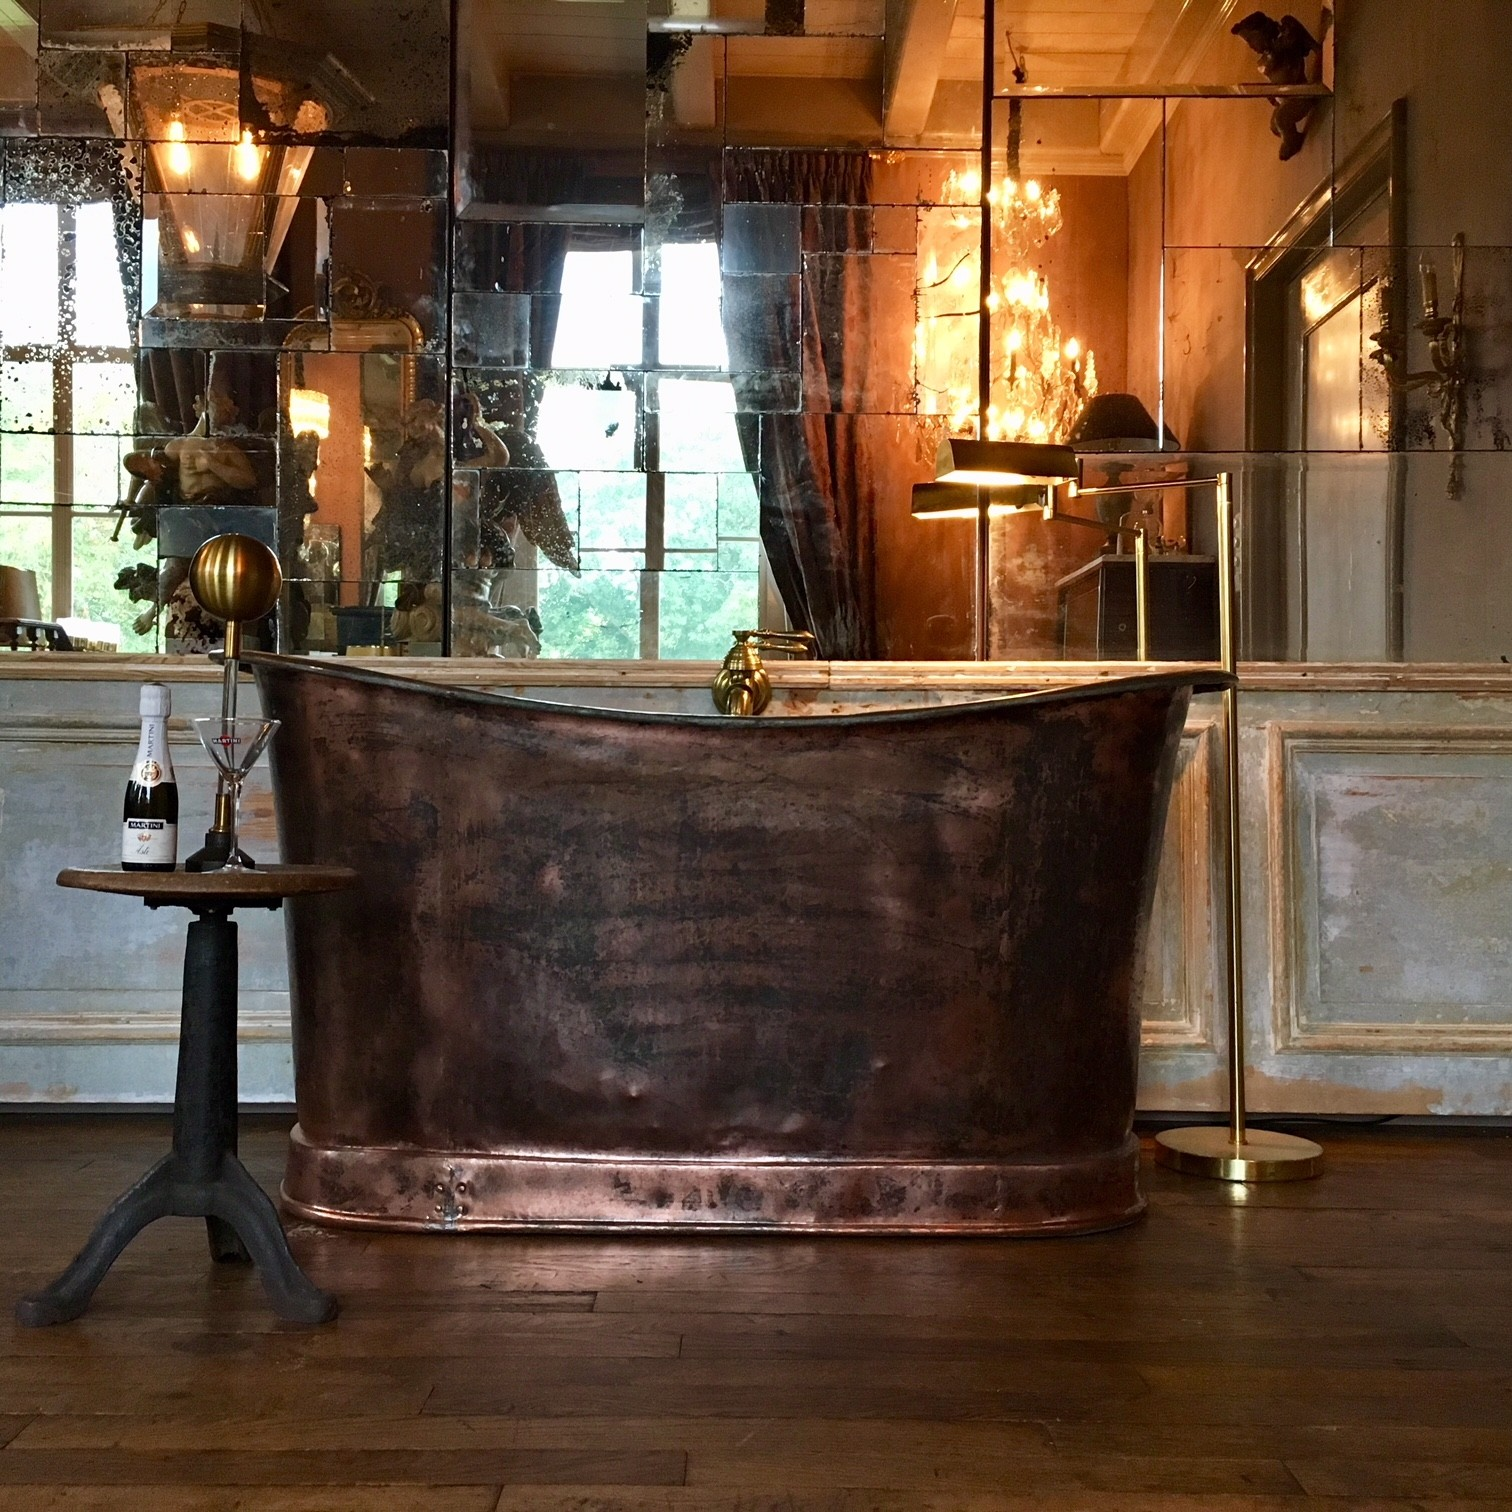 Beautiful early 19th century copper bathtub